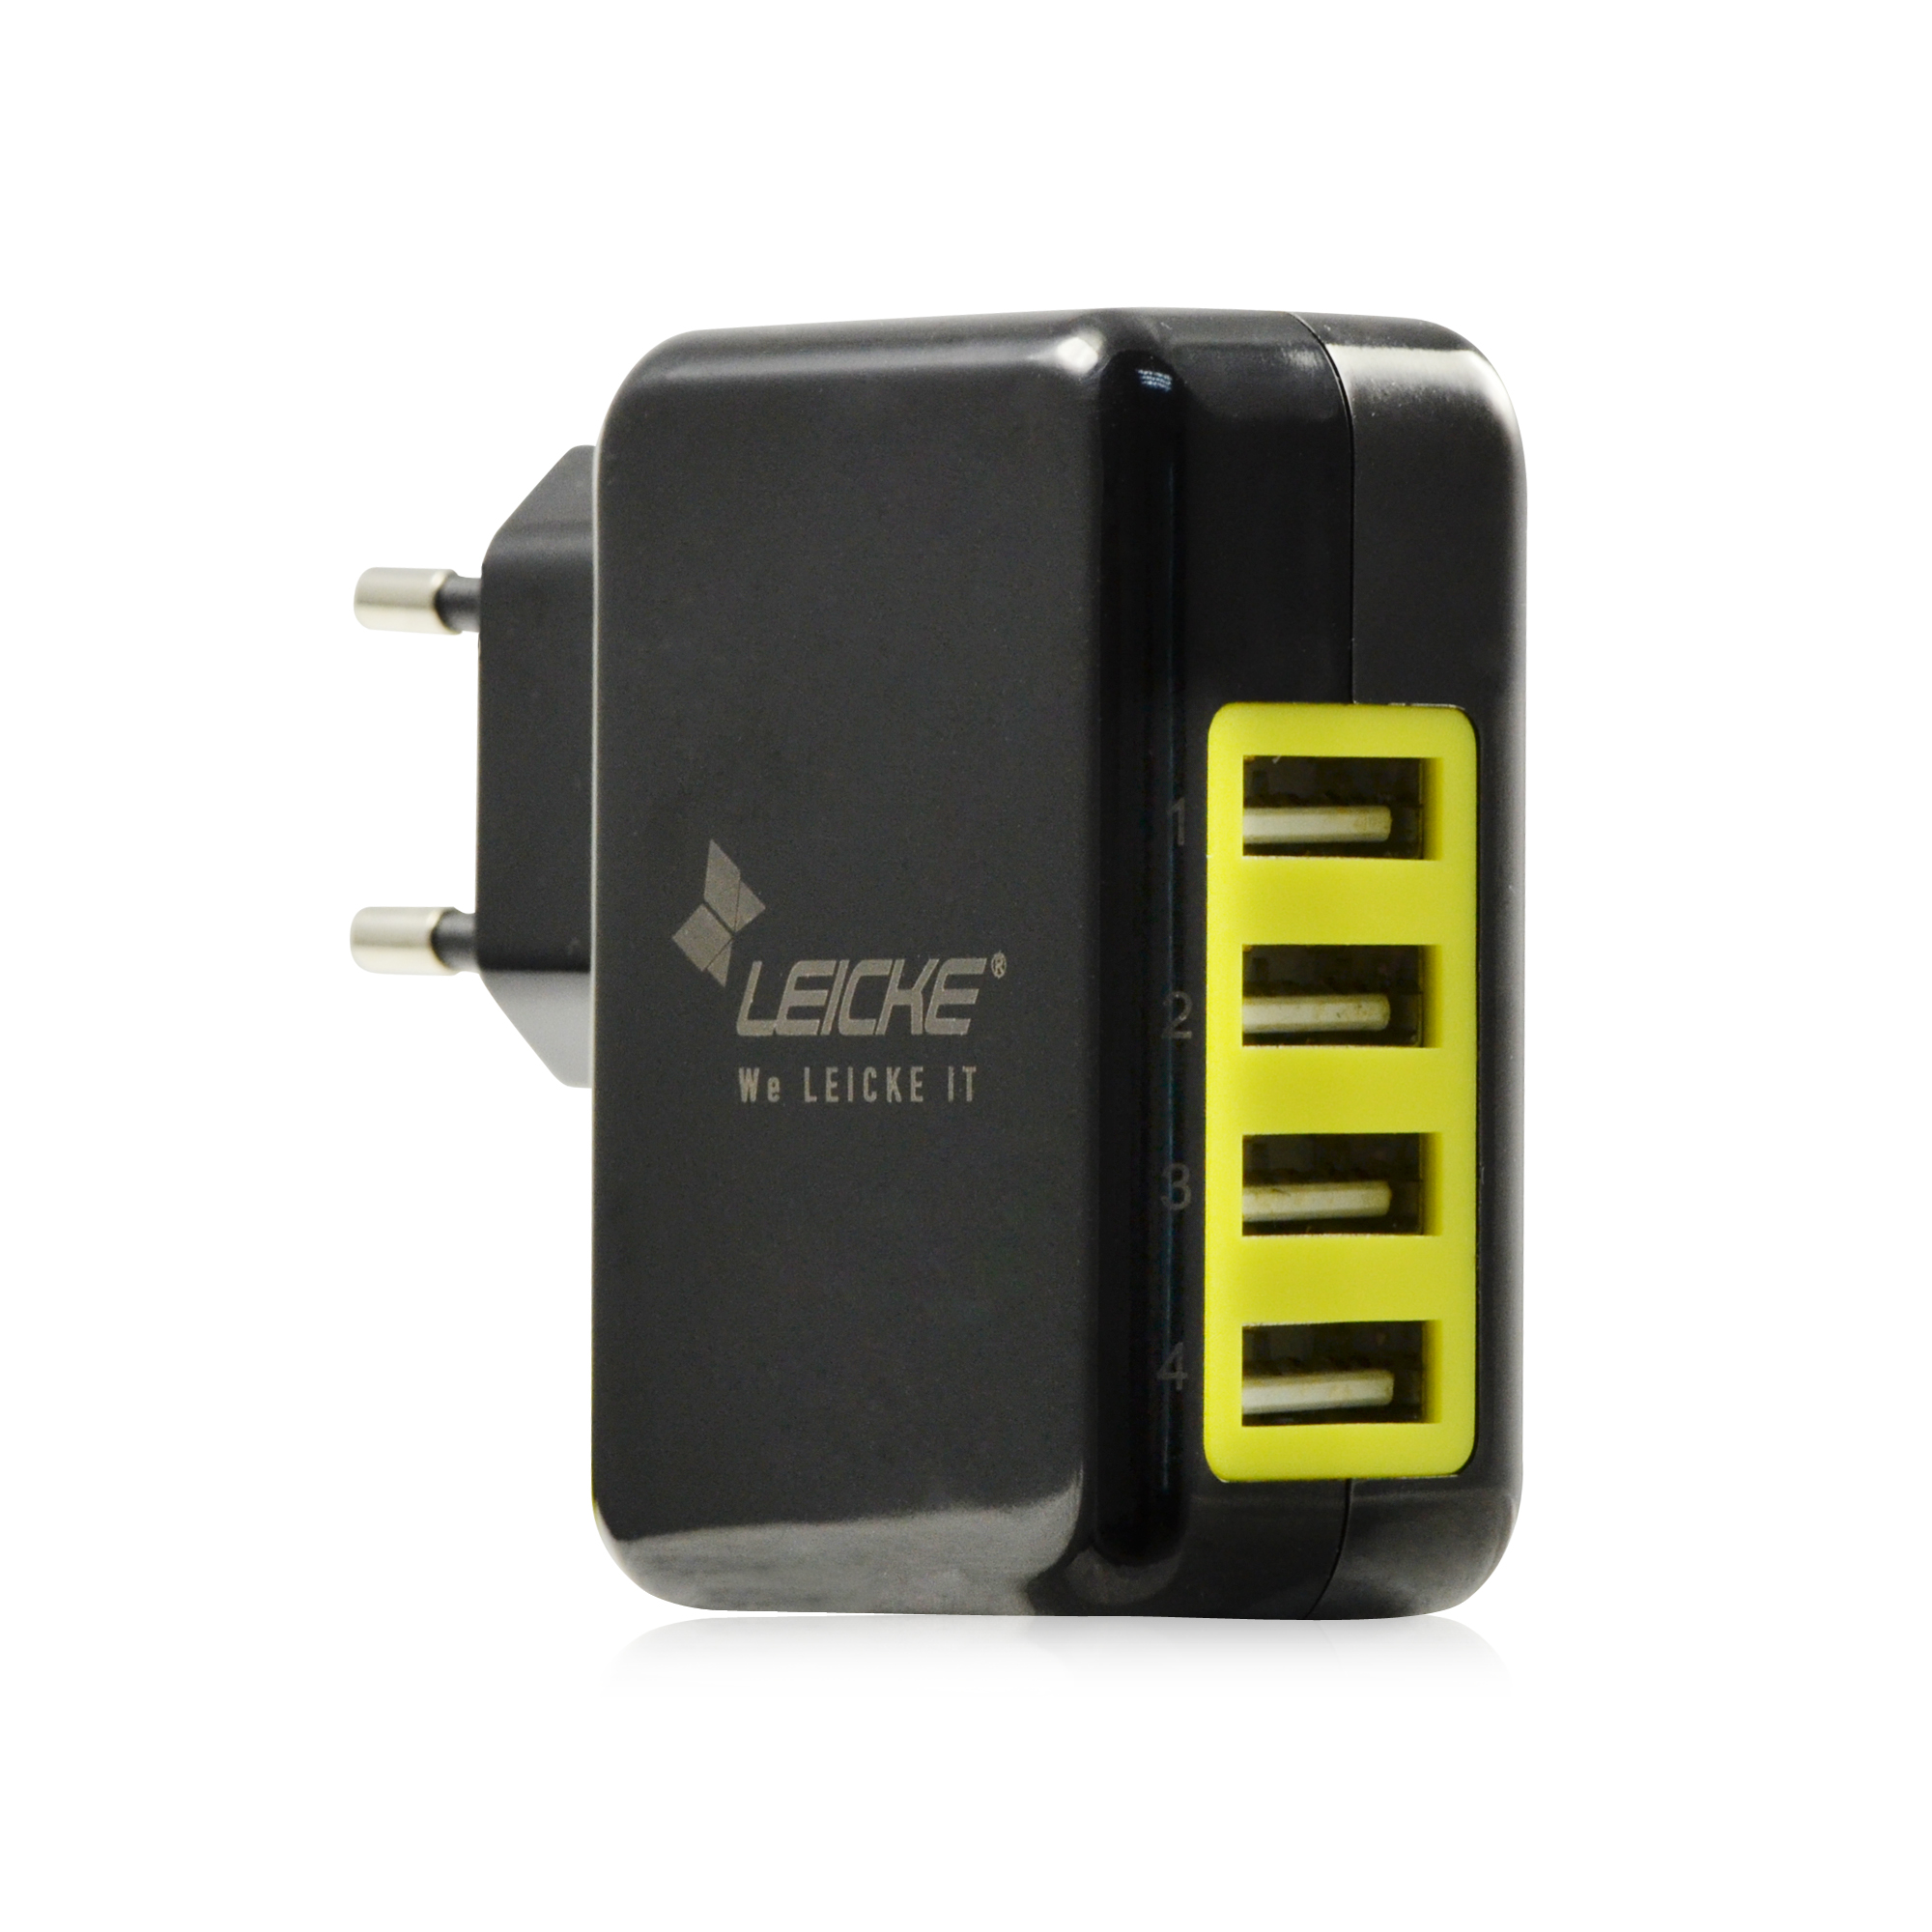 leicke leicke adaptateur chargeur mural universel avec 4 ports usb. Black Bedroom Furniture Sets. Home Design Ideas